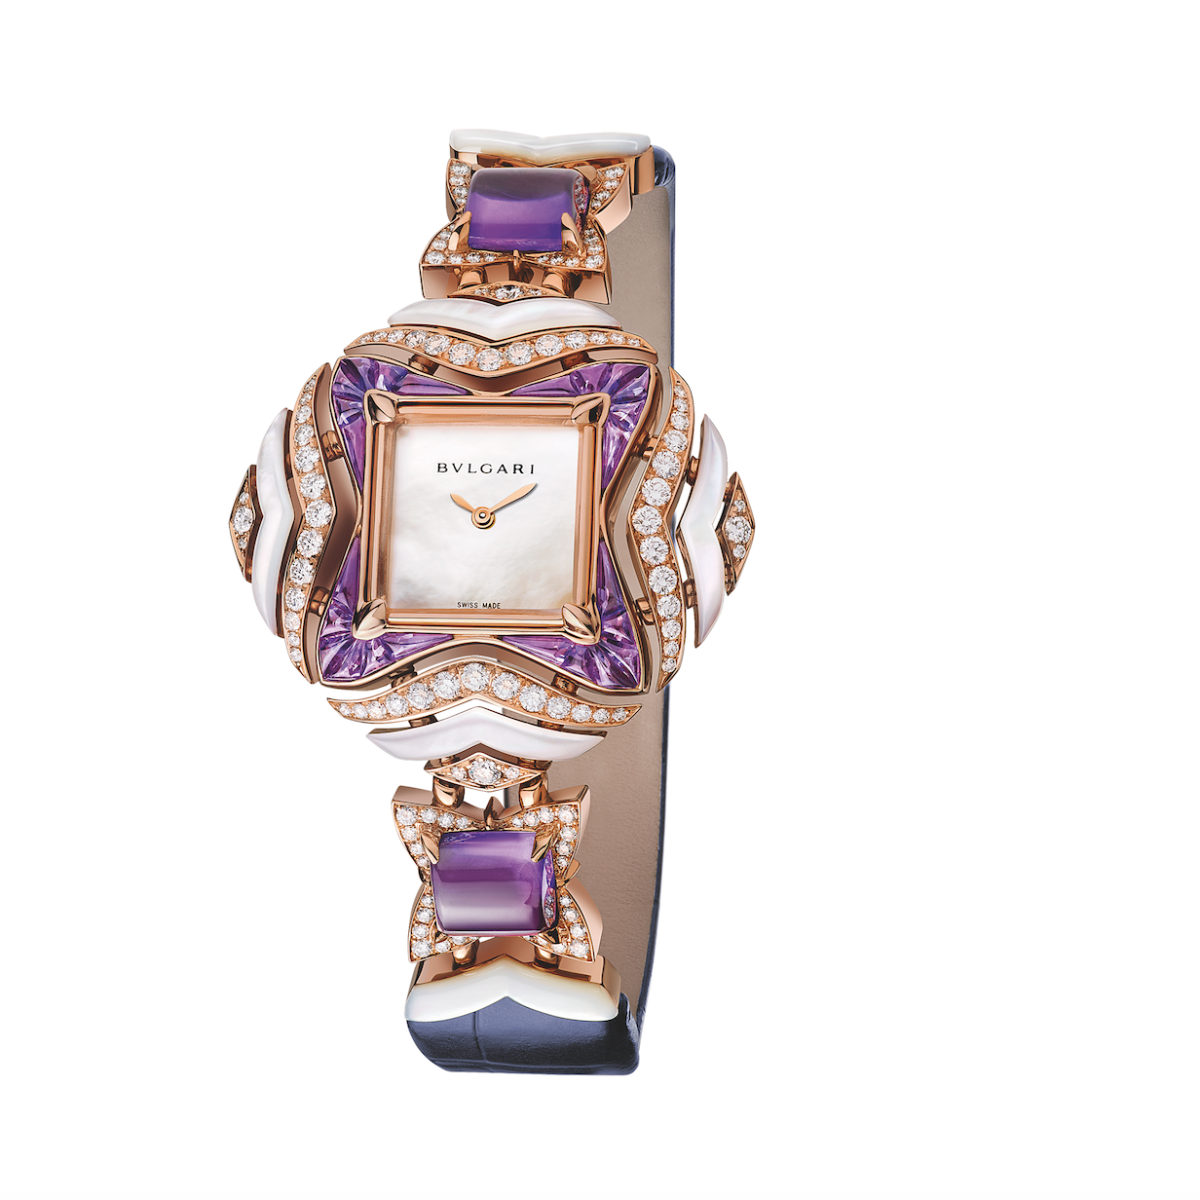 Bulgari Color of Time watch at Zadok